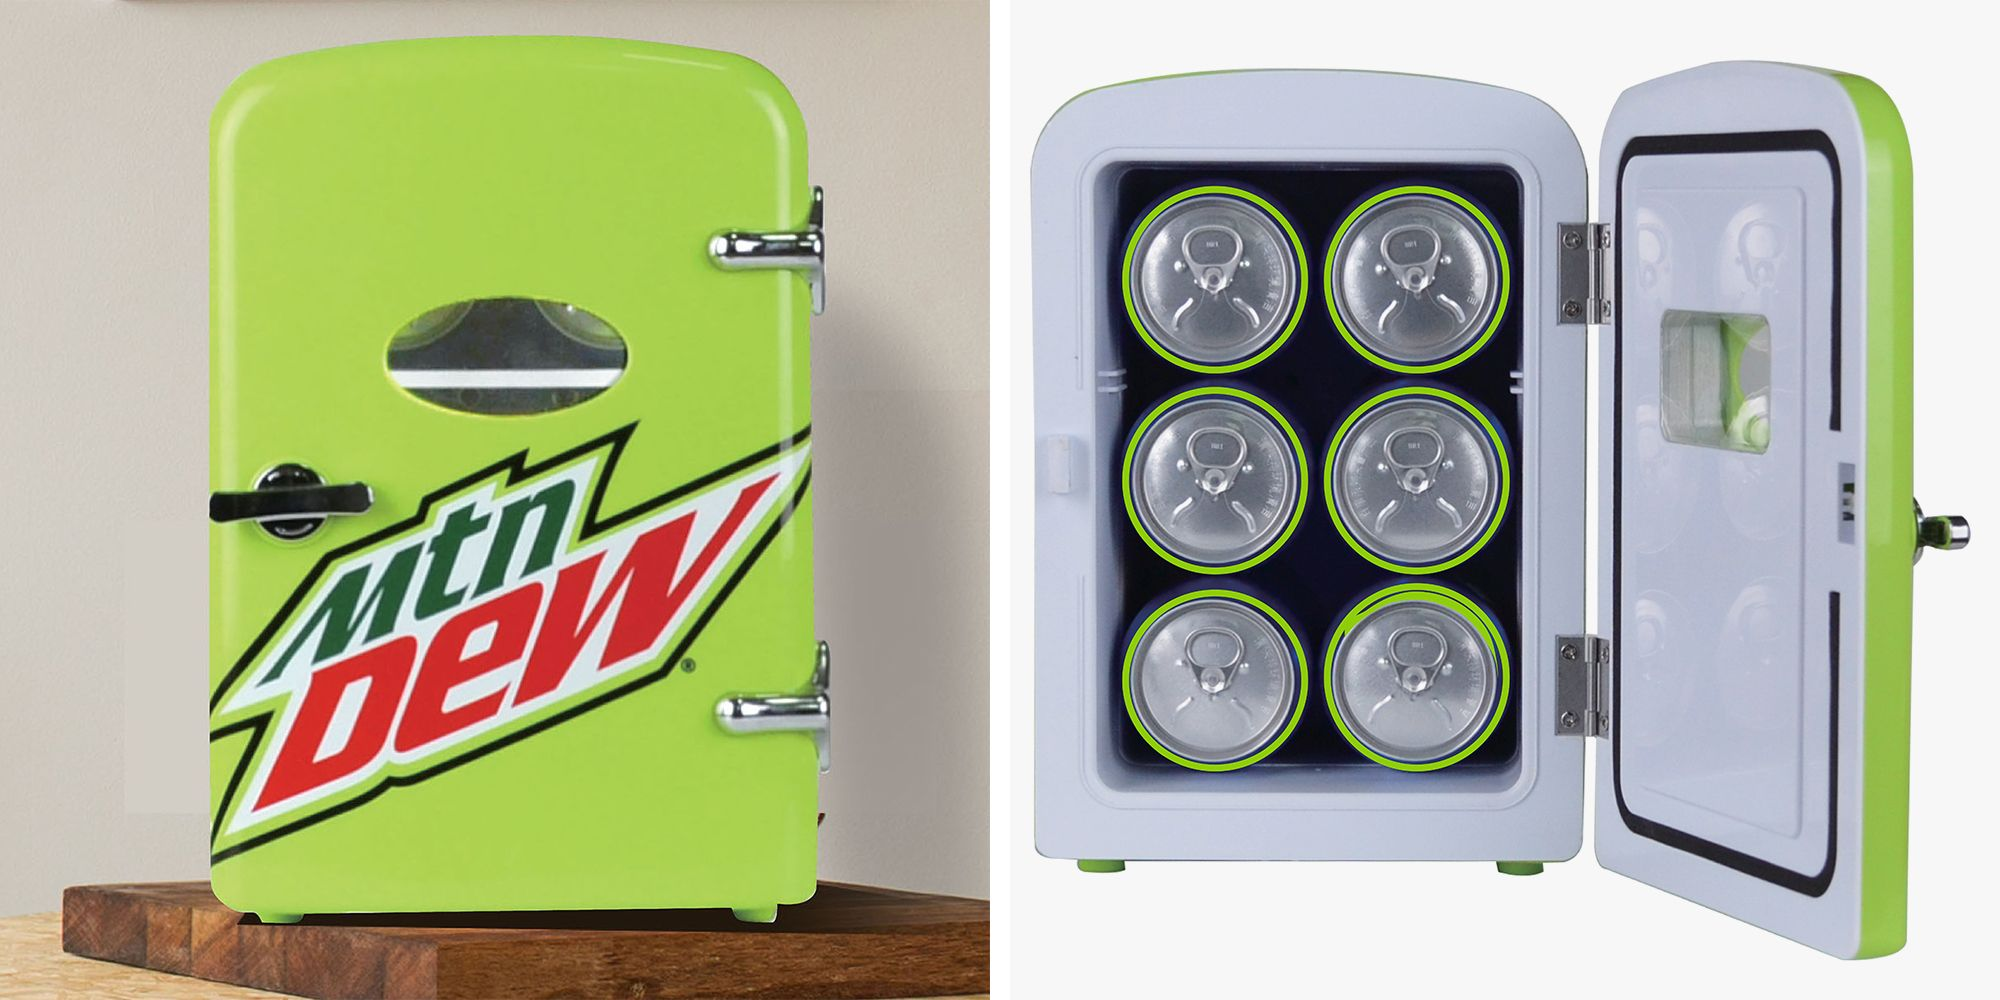 Walmart Is Selling A Mountain Dew Mini Fridge For $29